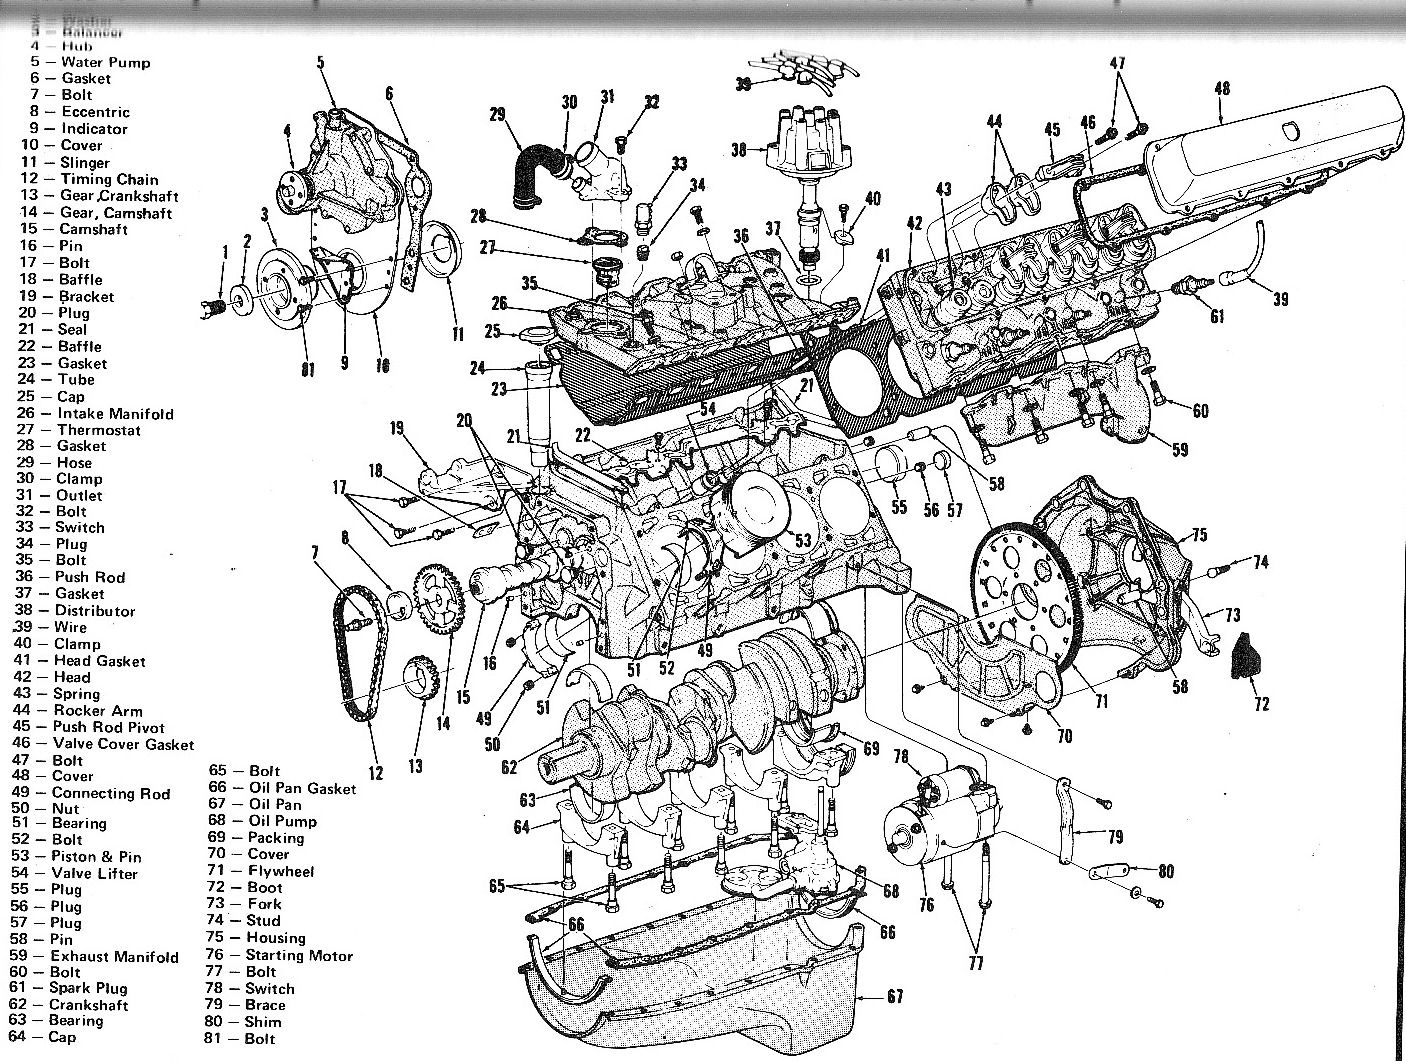 complete v 8 engine diagram car stuff diagram mustang chevy cars [ 1406 x 1061 Pixel ]